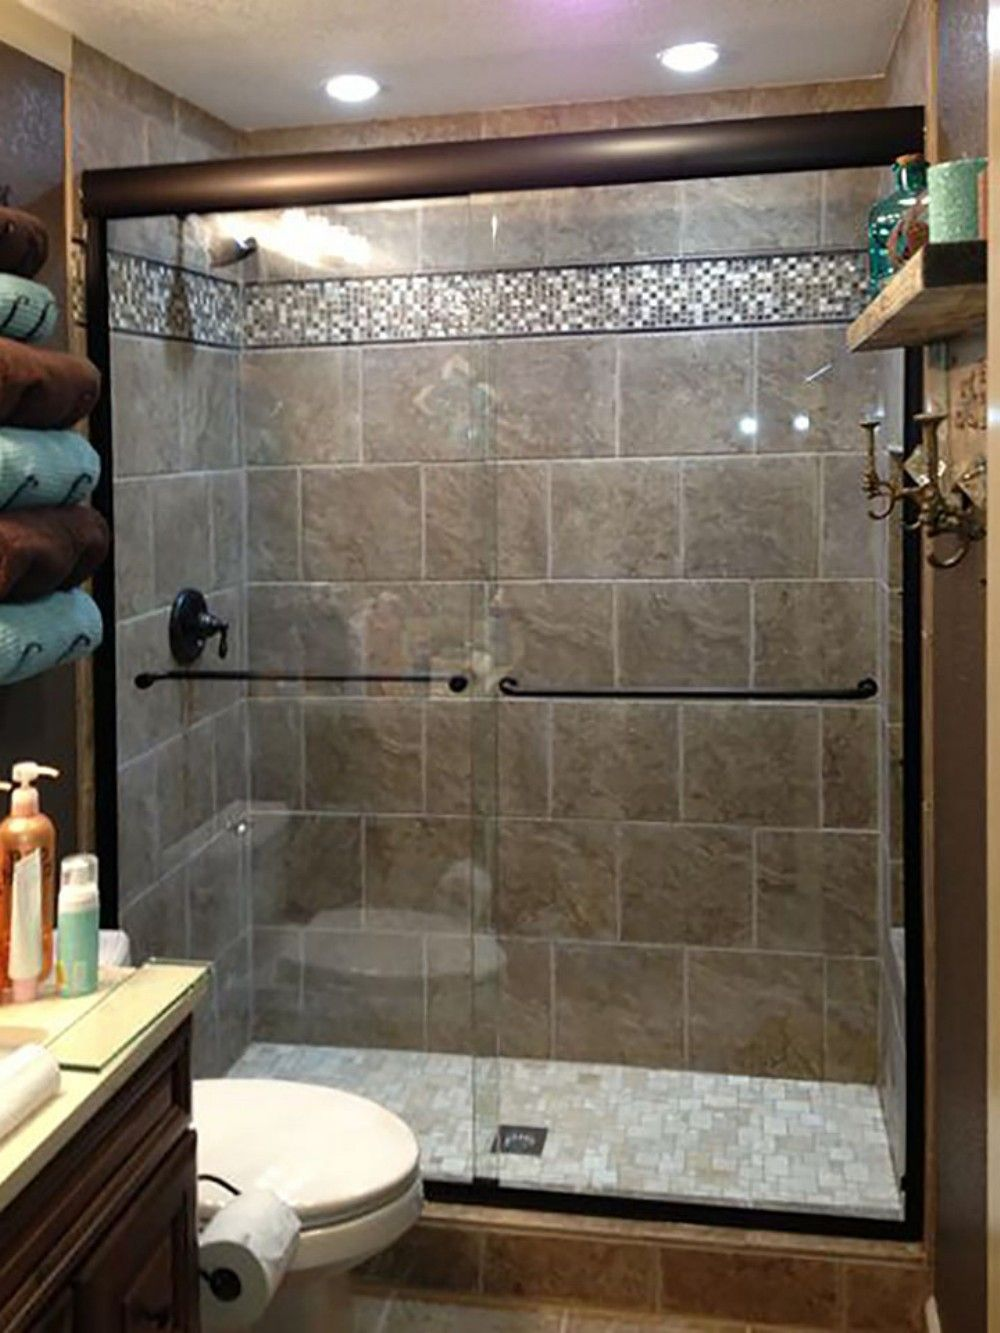 Cozy small bathroom shower with tub tile design ideas small bathroom showers tub tile and - Cozy commercial bathroom design ideas ...